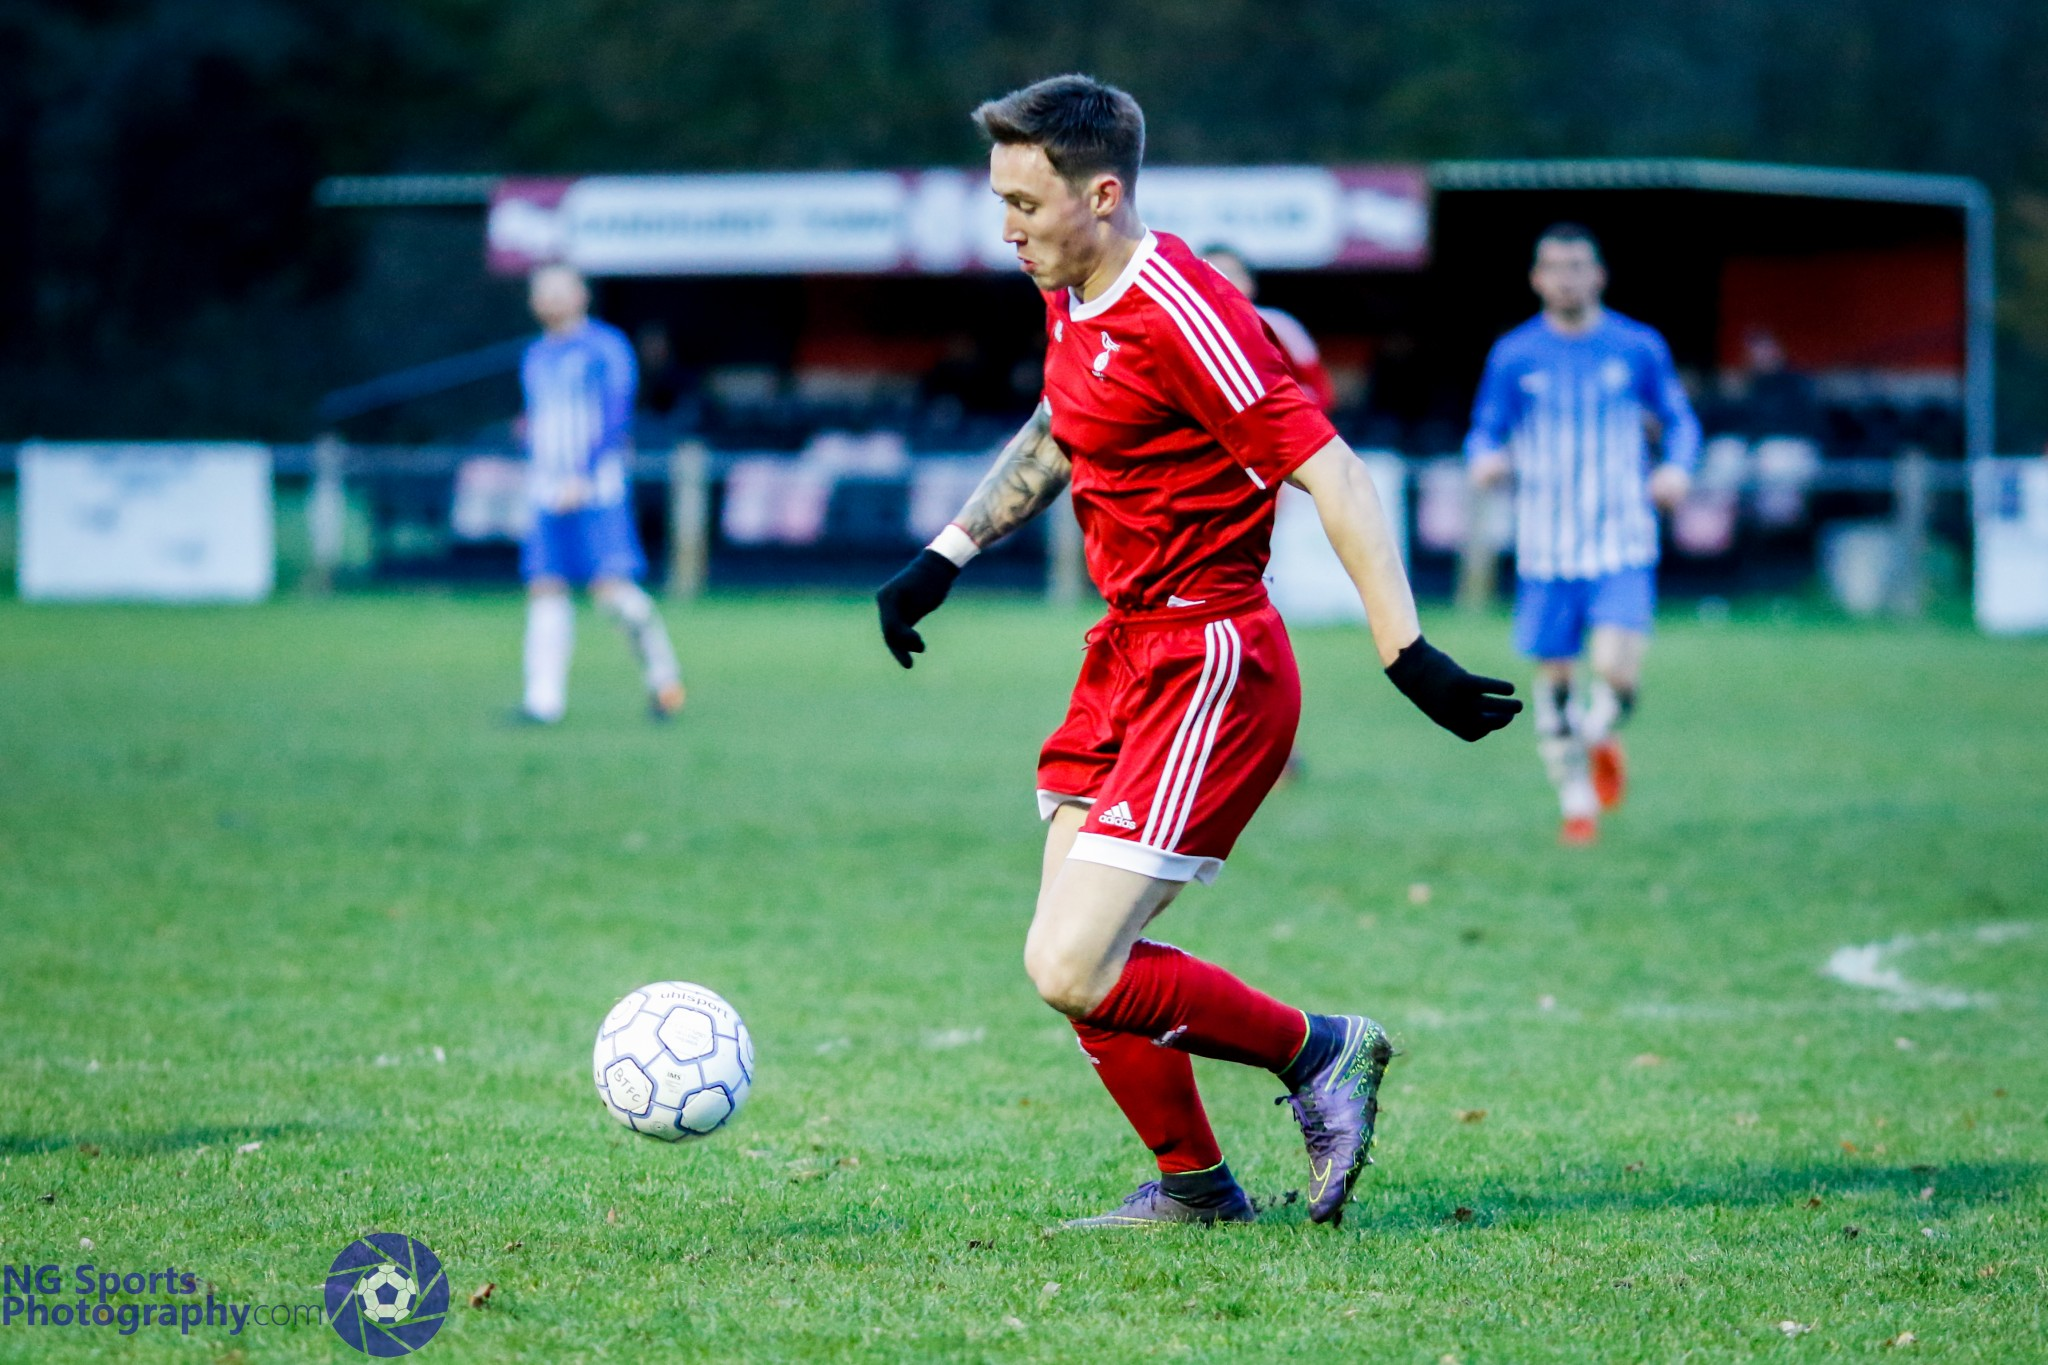 Report: Tremendous fightback by Bracknell Town to defeat leaders Thatcham Town